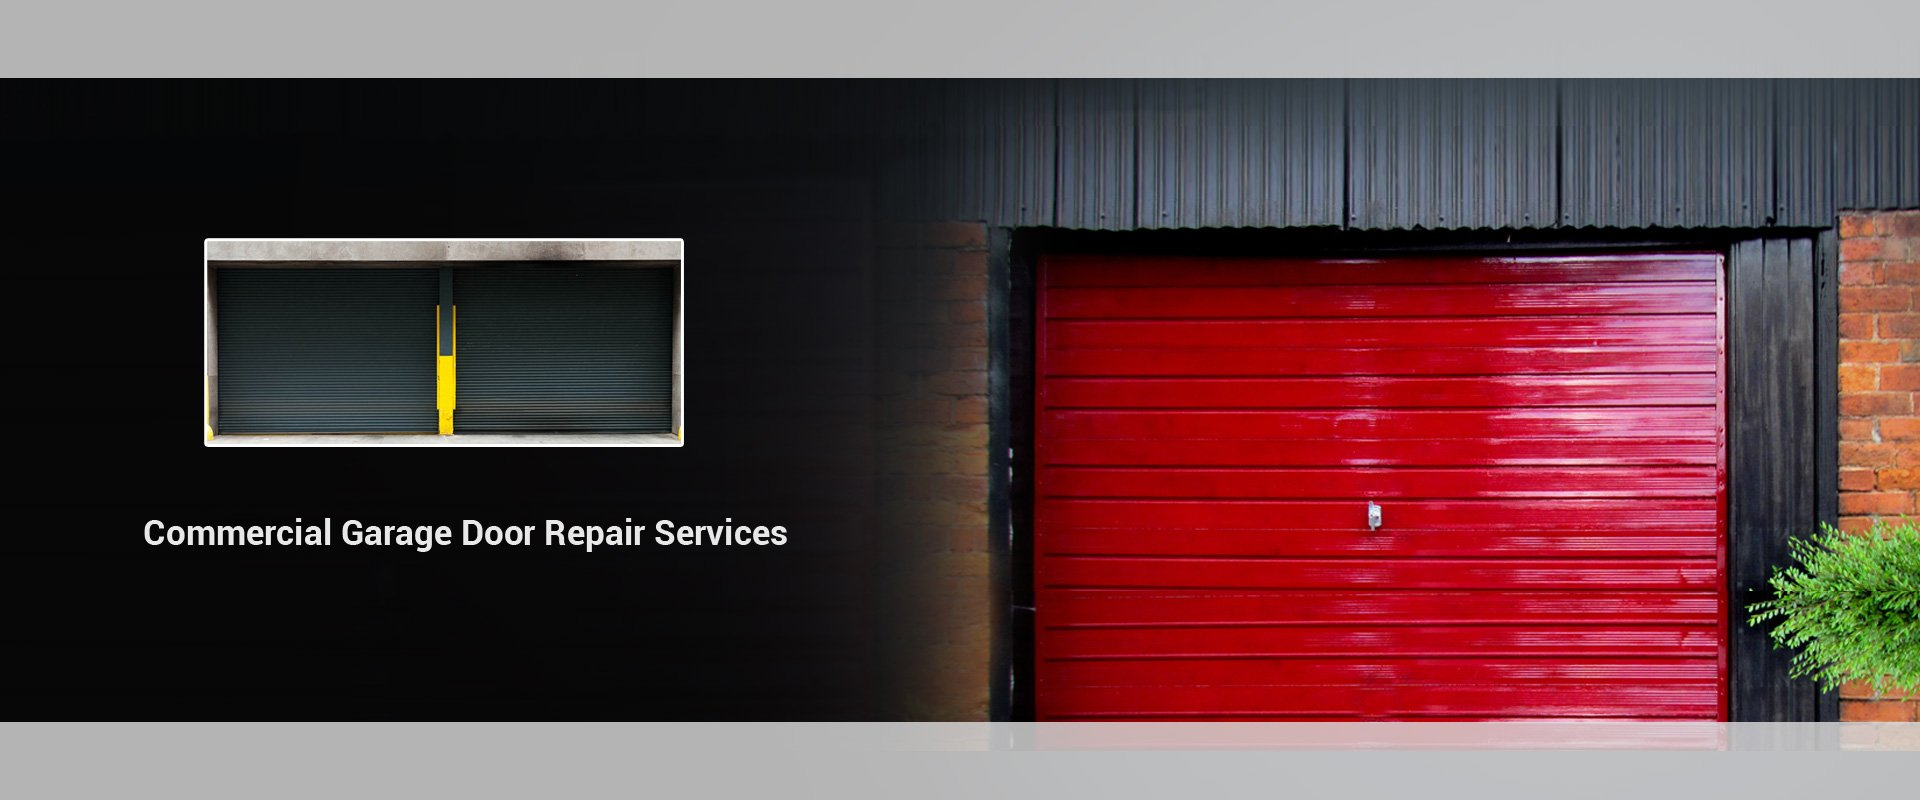 Commercial Garage Door Repair Thousand Oaks CA